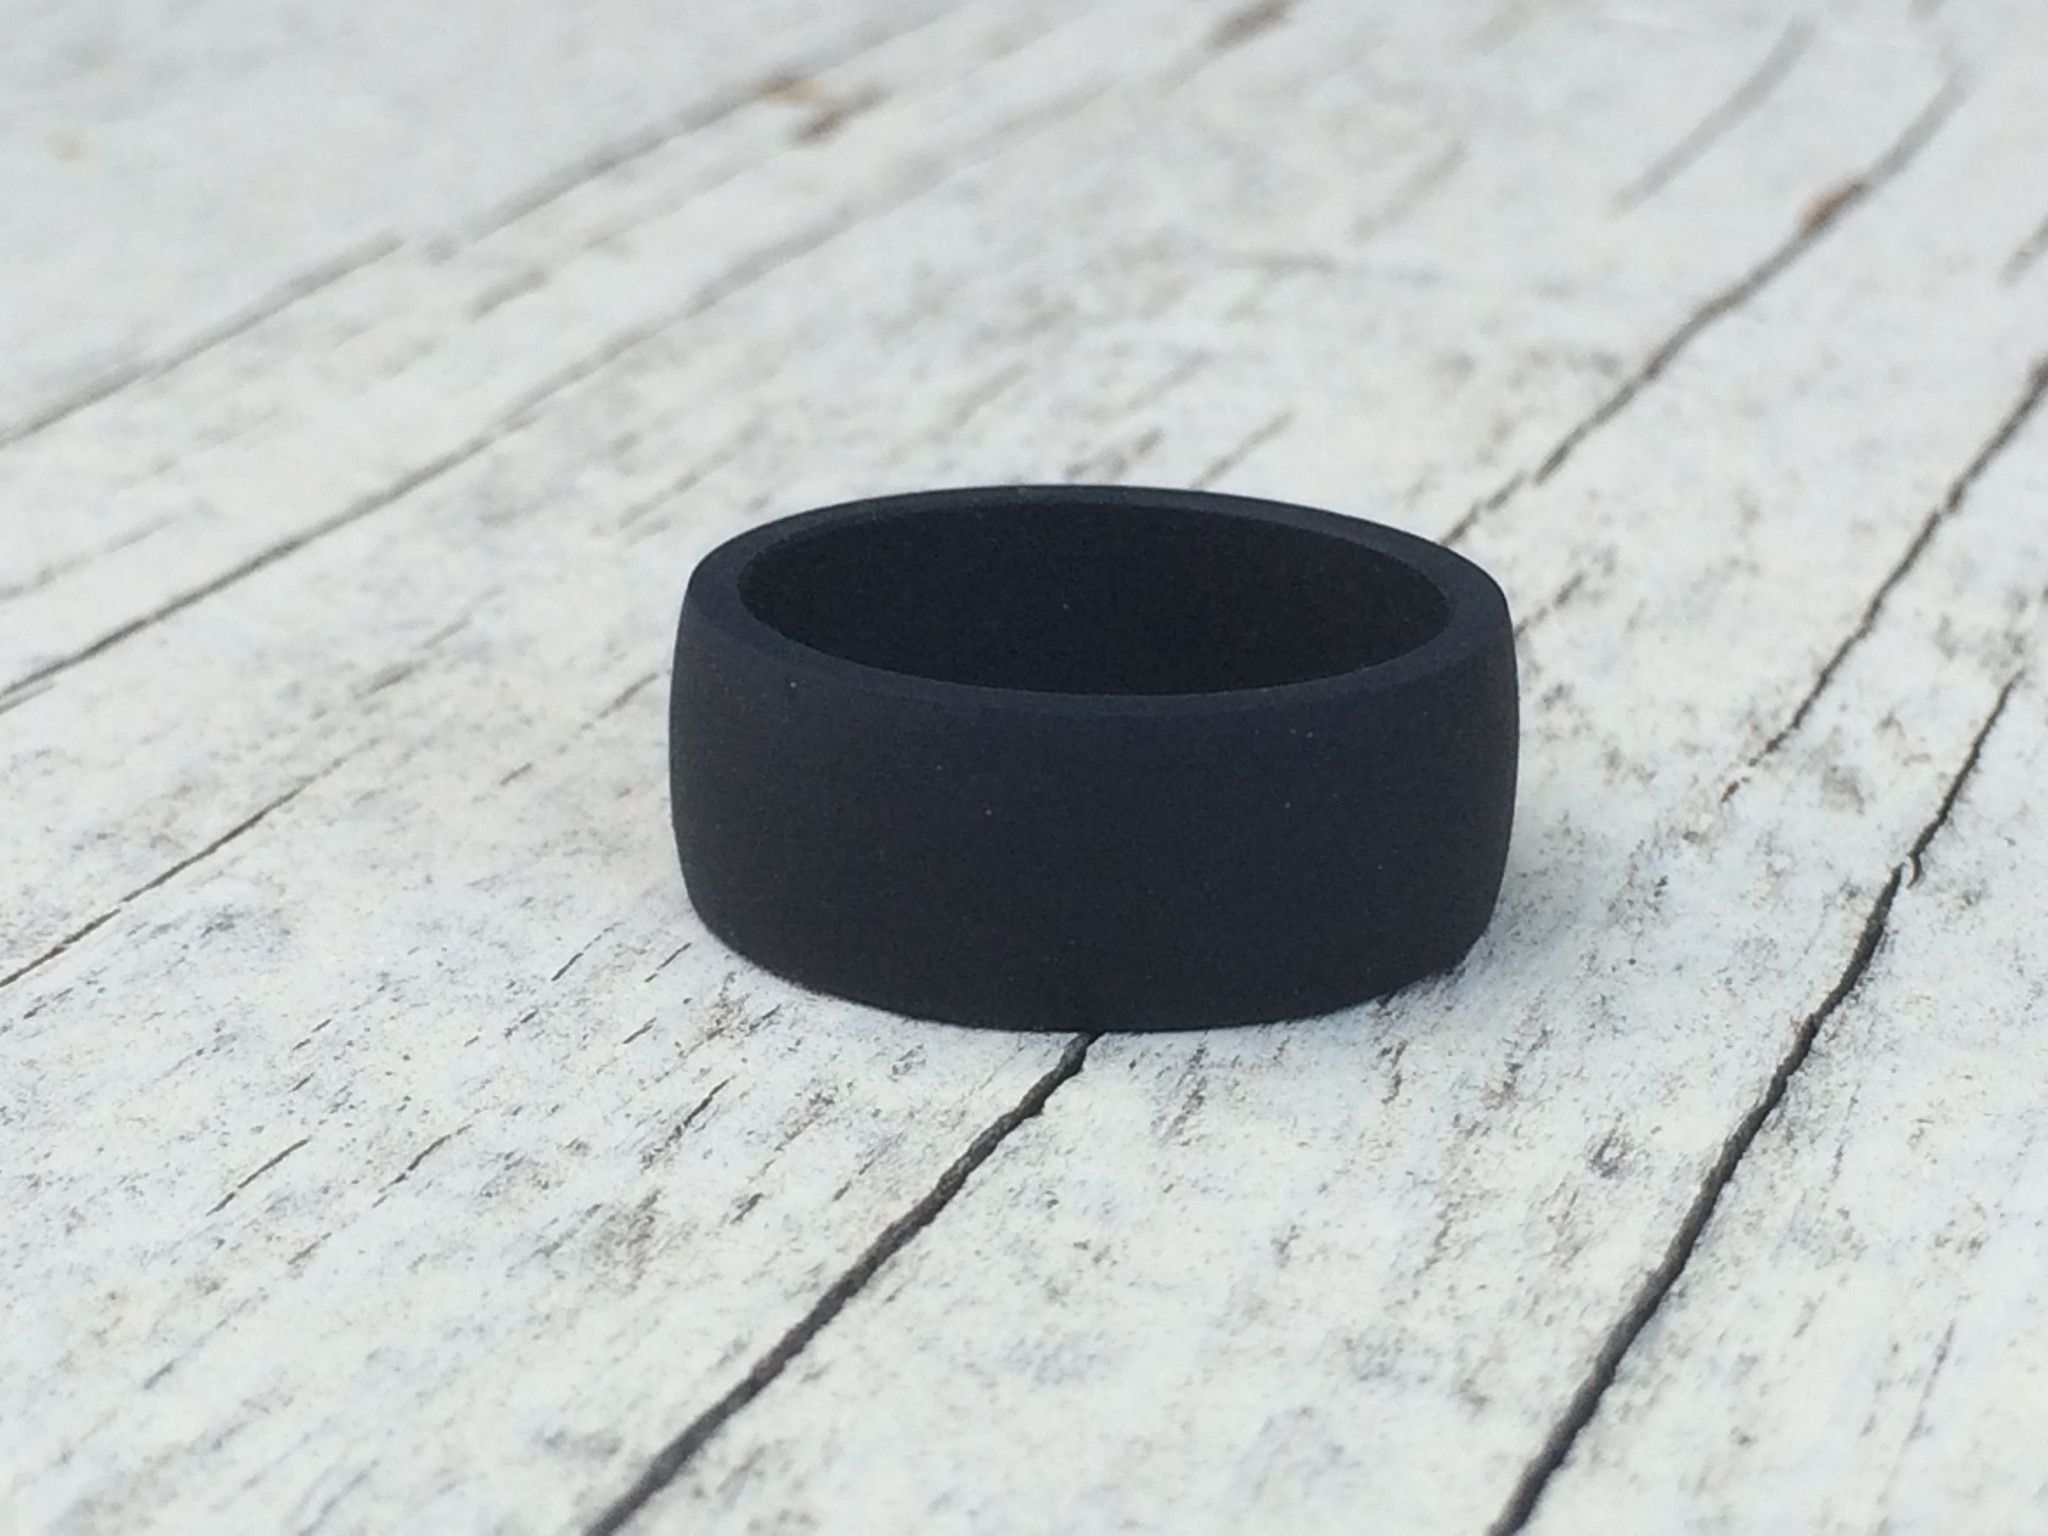 Silicone rings are safe comfortable and unobtrusive Regardless of